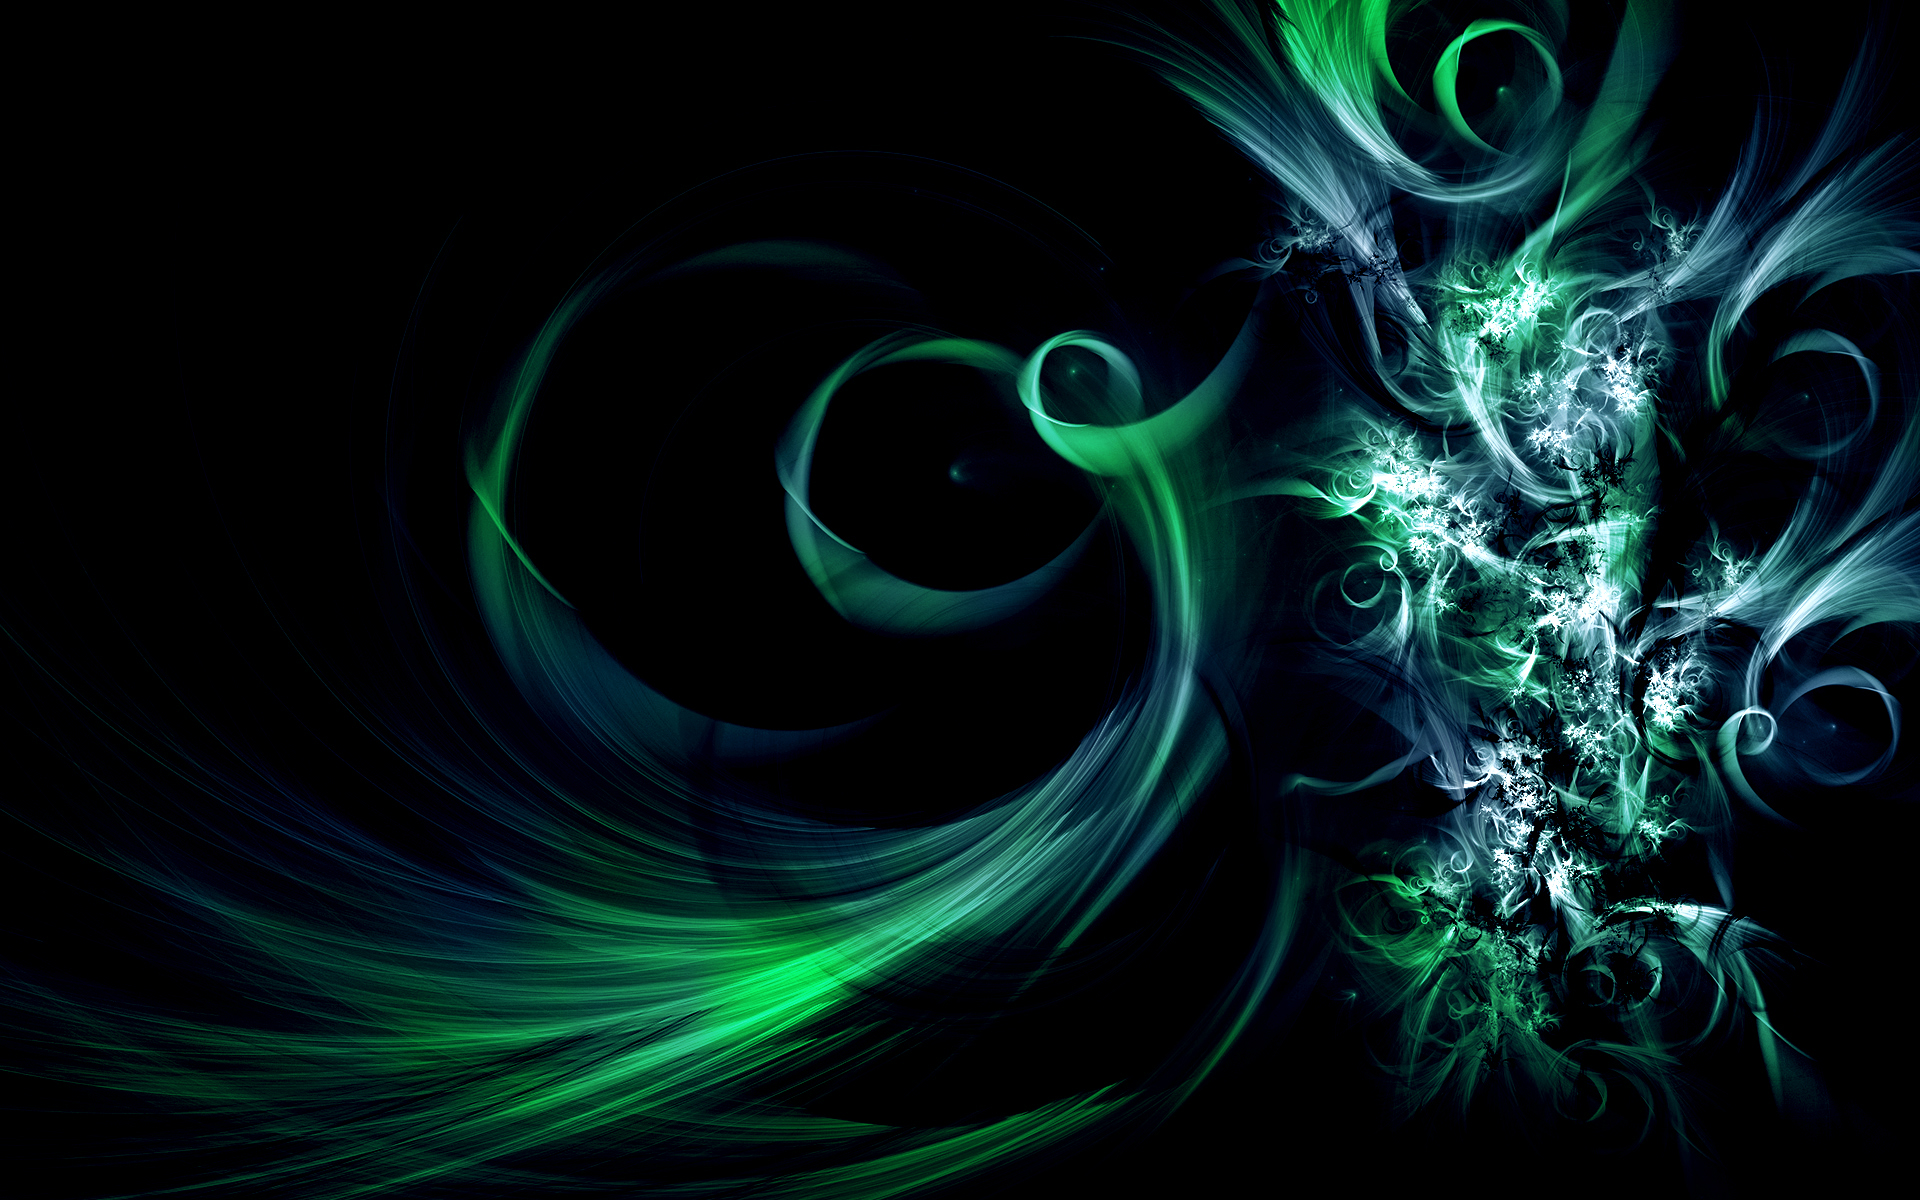 Alpha coders wallpaper abyss abstract cool 97447